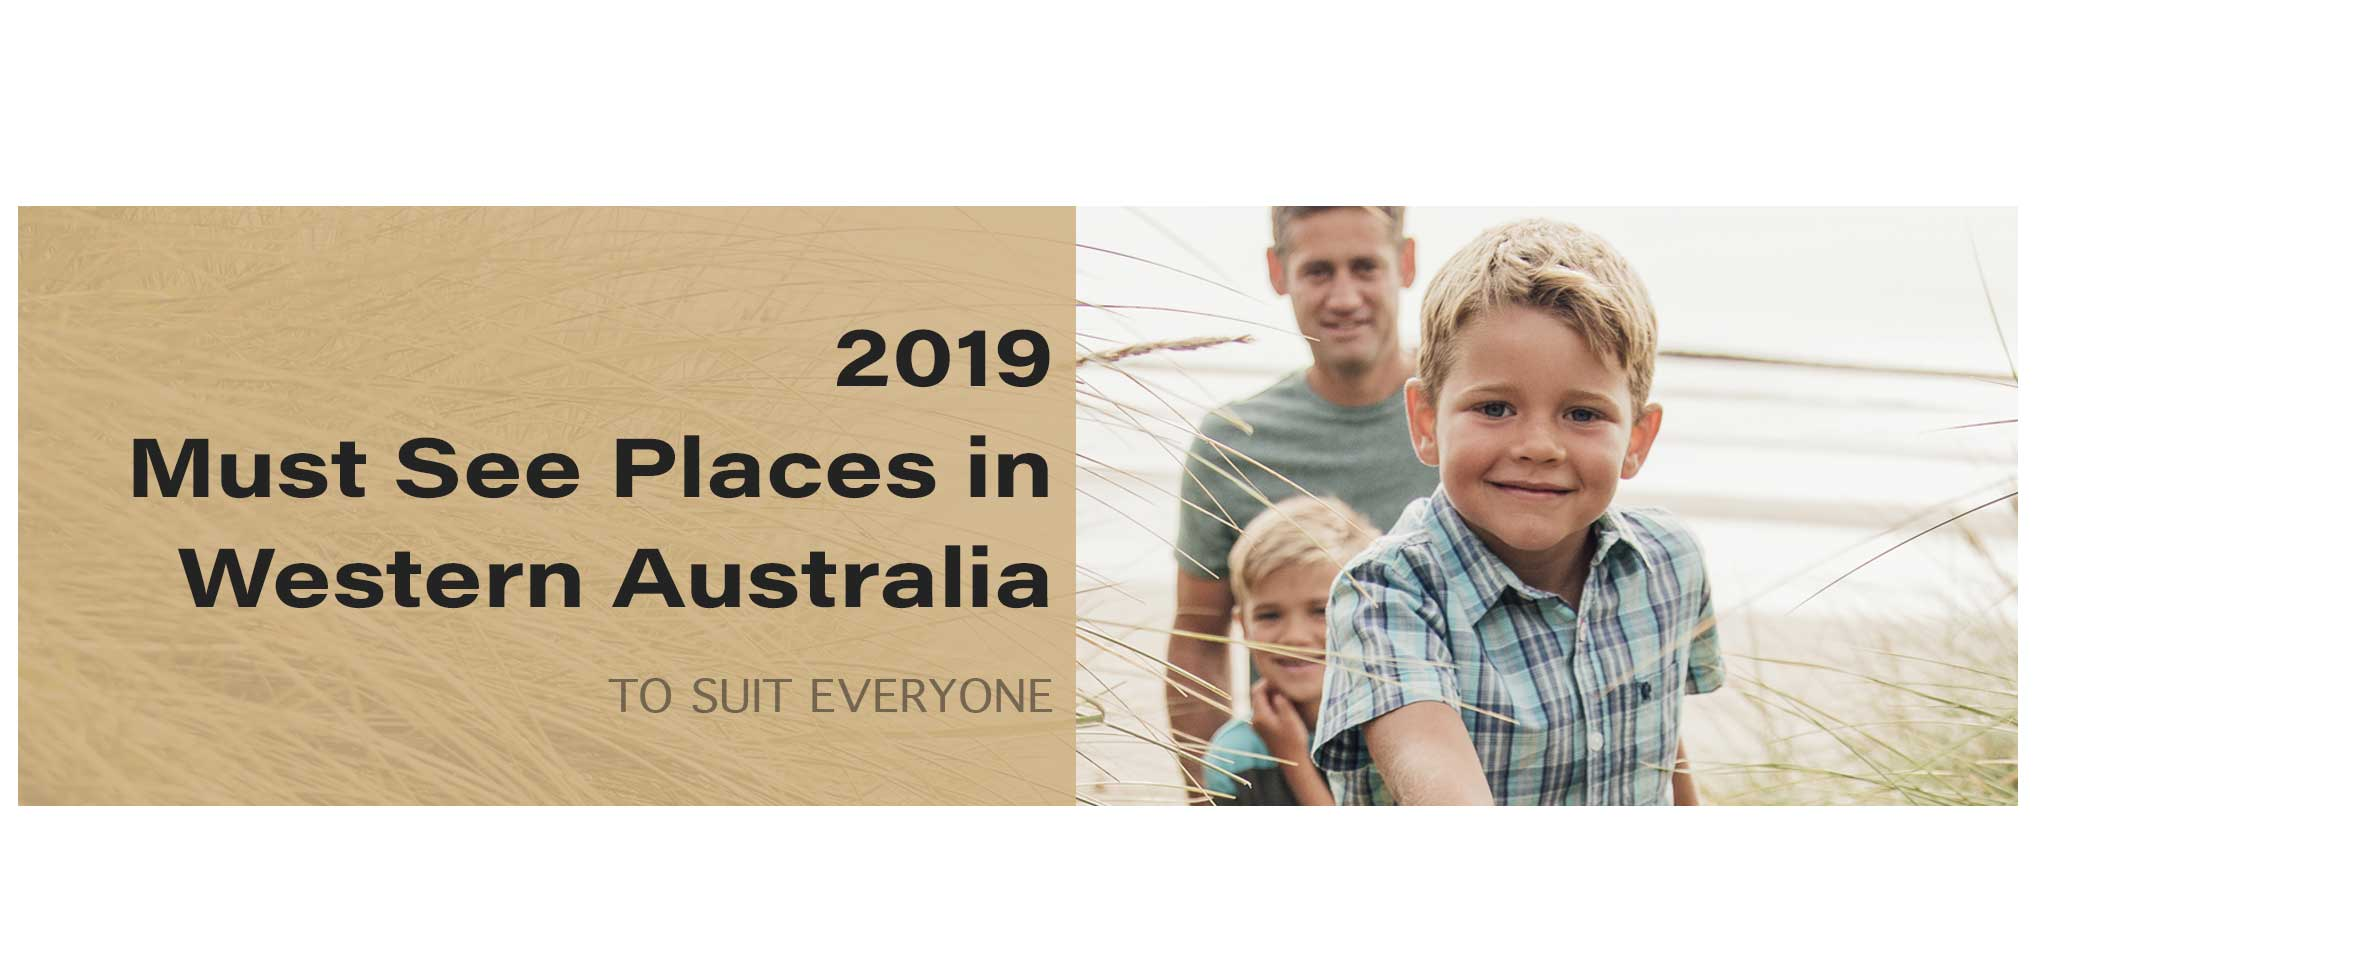 2019 Must See Places in Western Australia